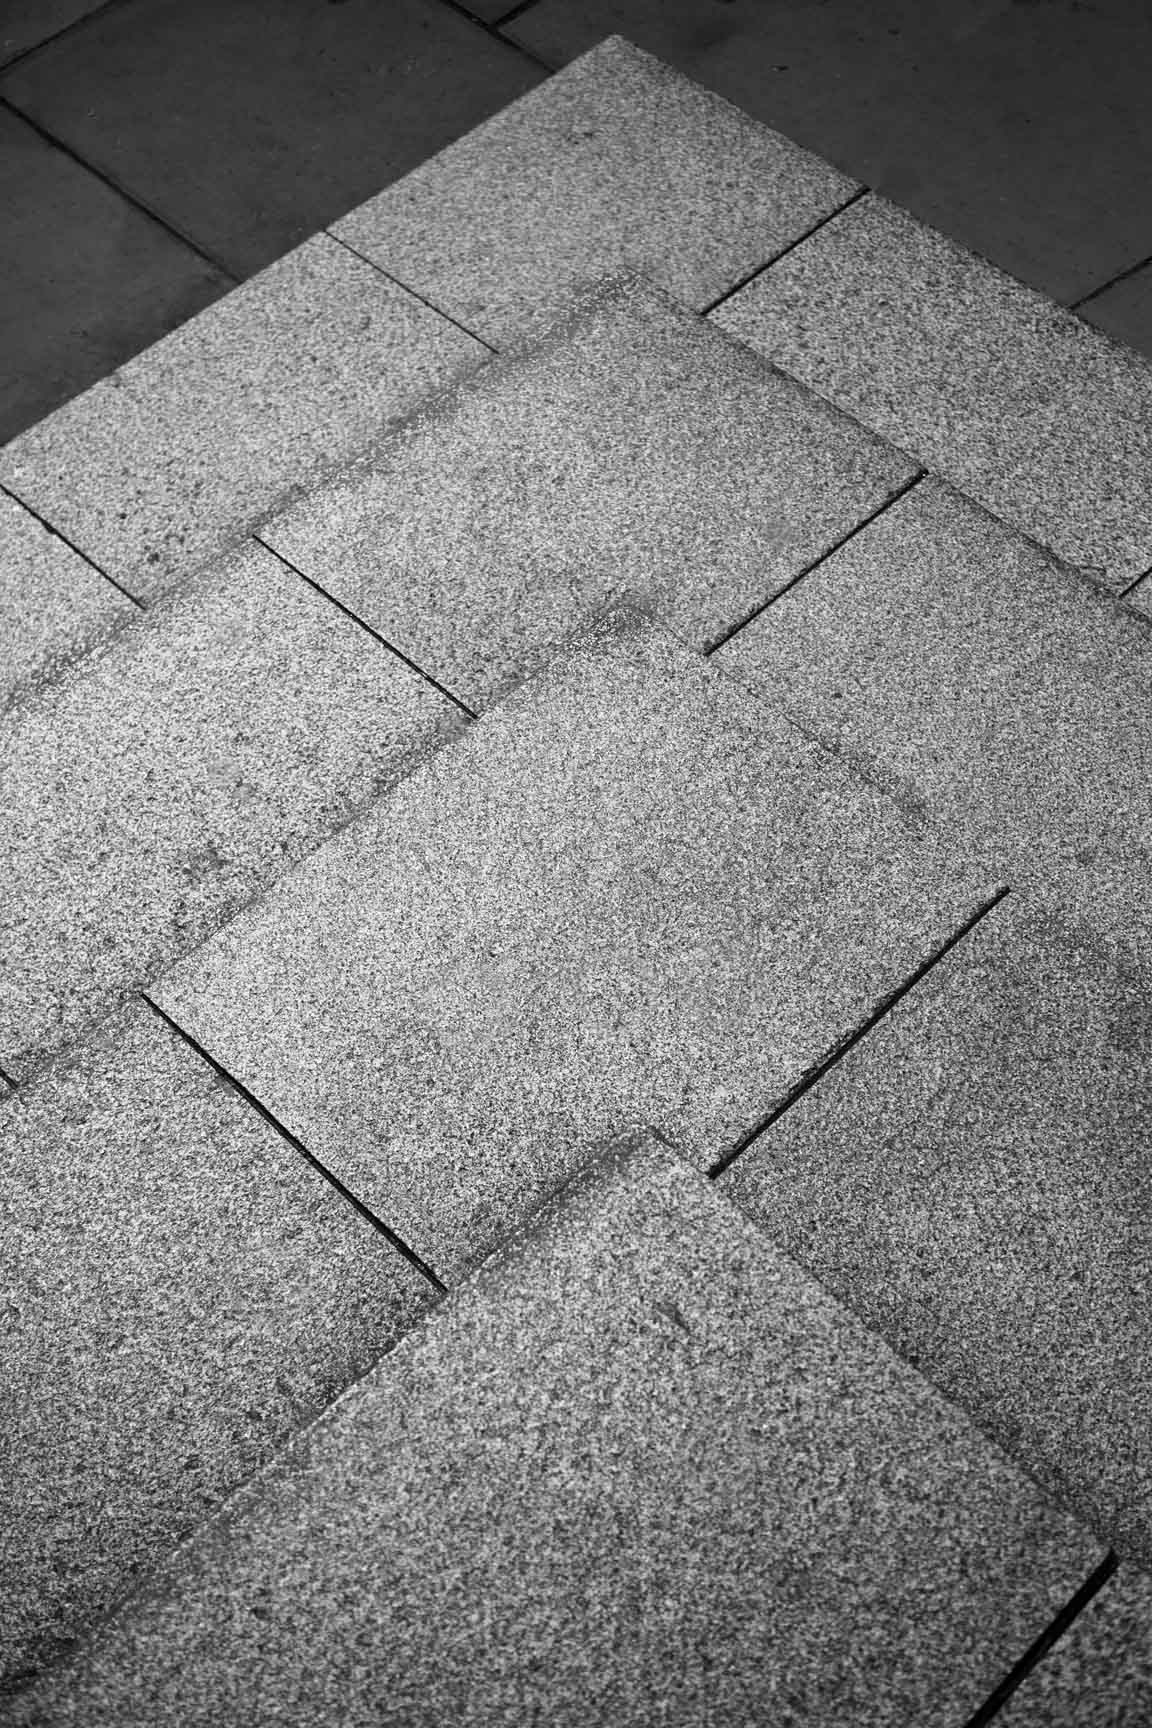 Stone Steps (1 of 1)